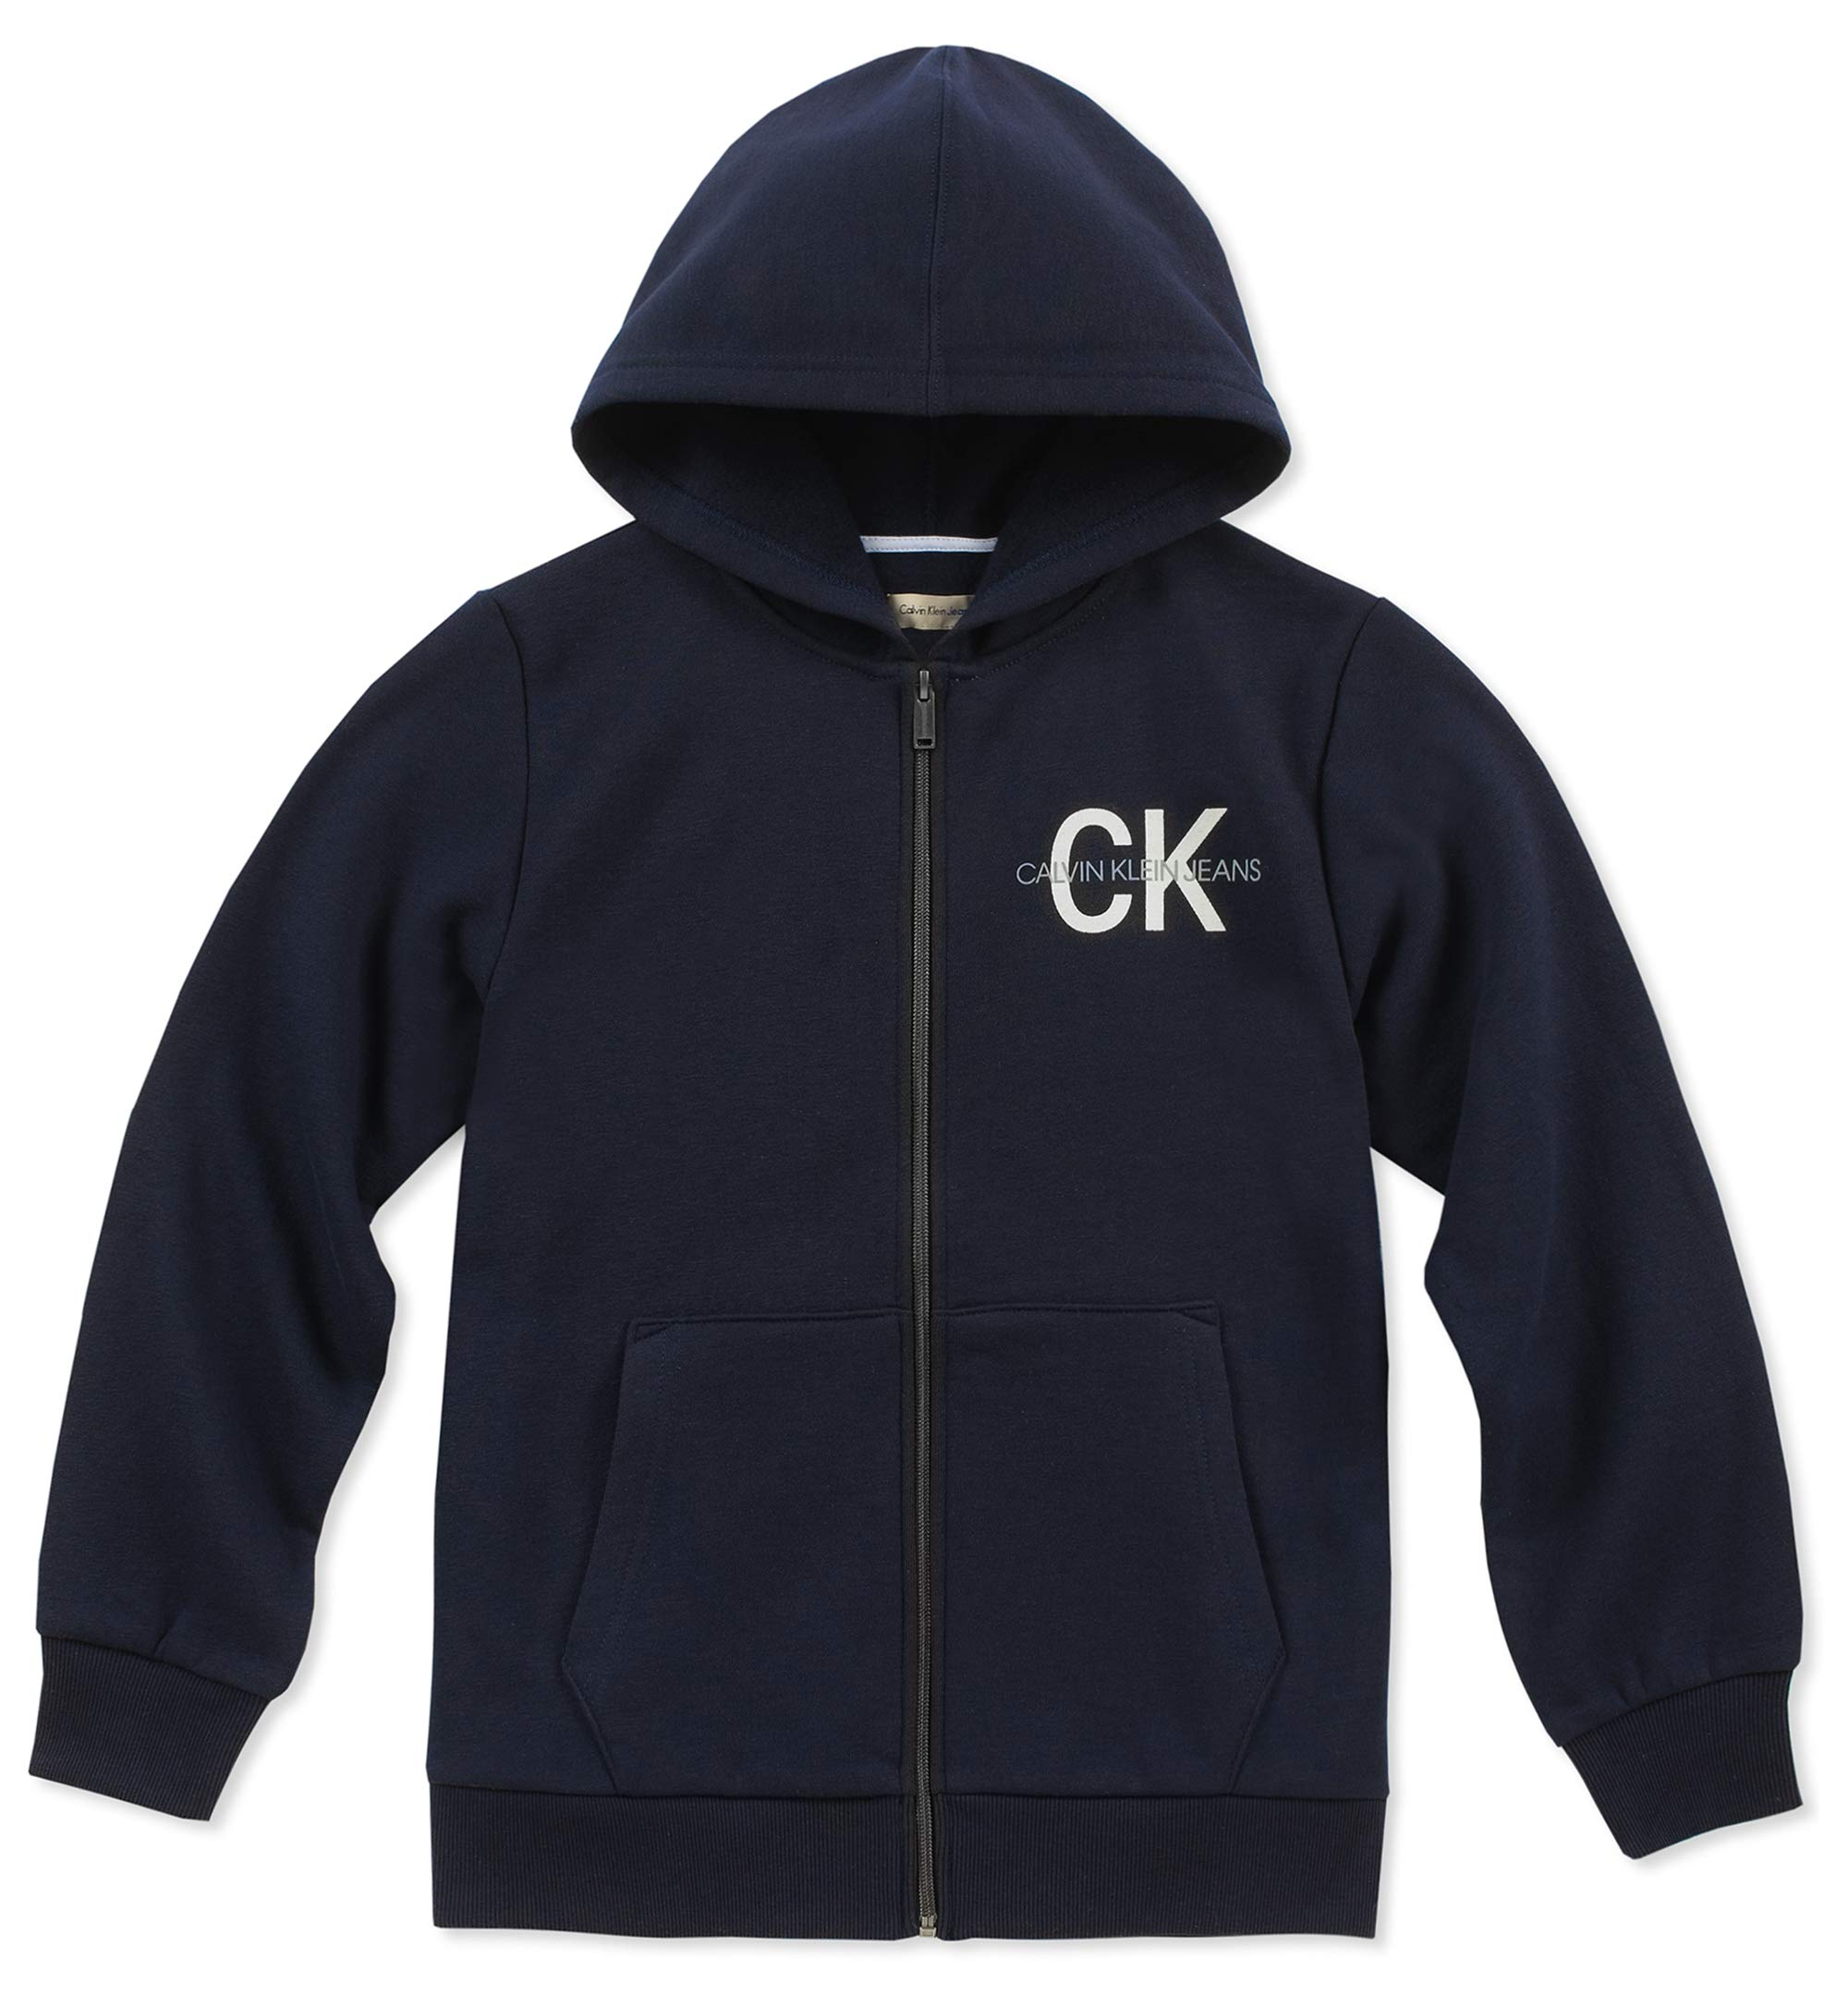 Calvin Klein Boys' Big Fleece Hoodie, Navy, Large (14/16)